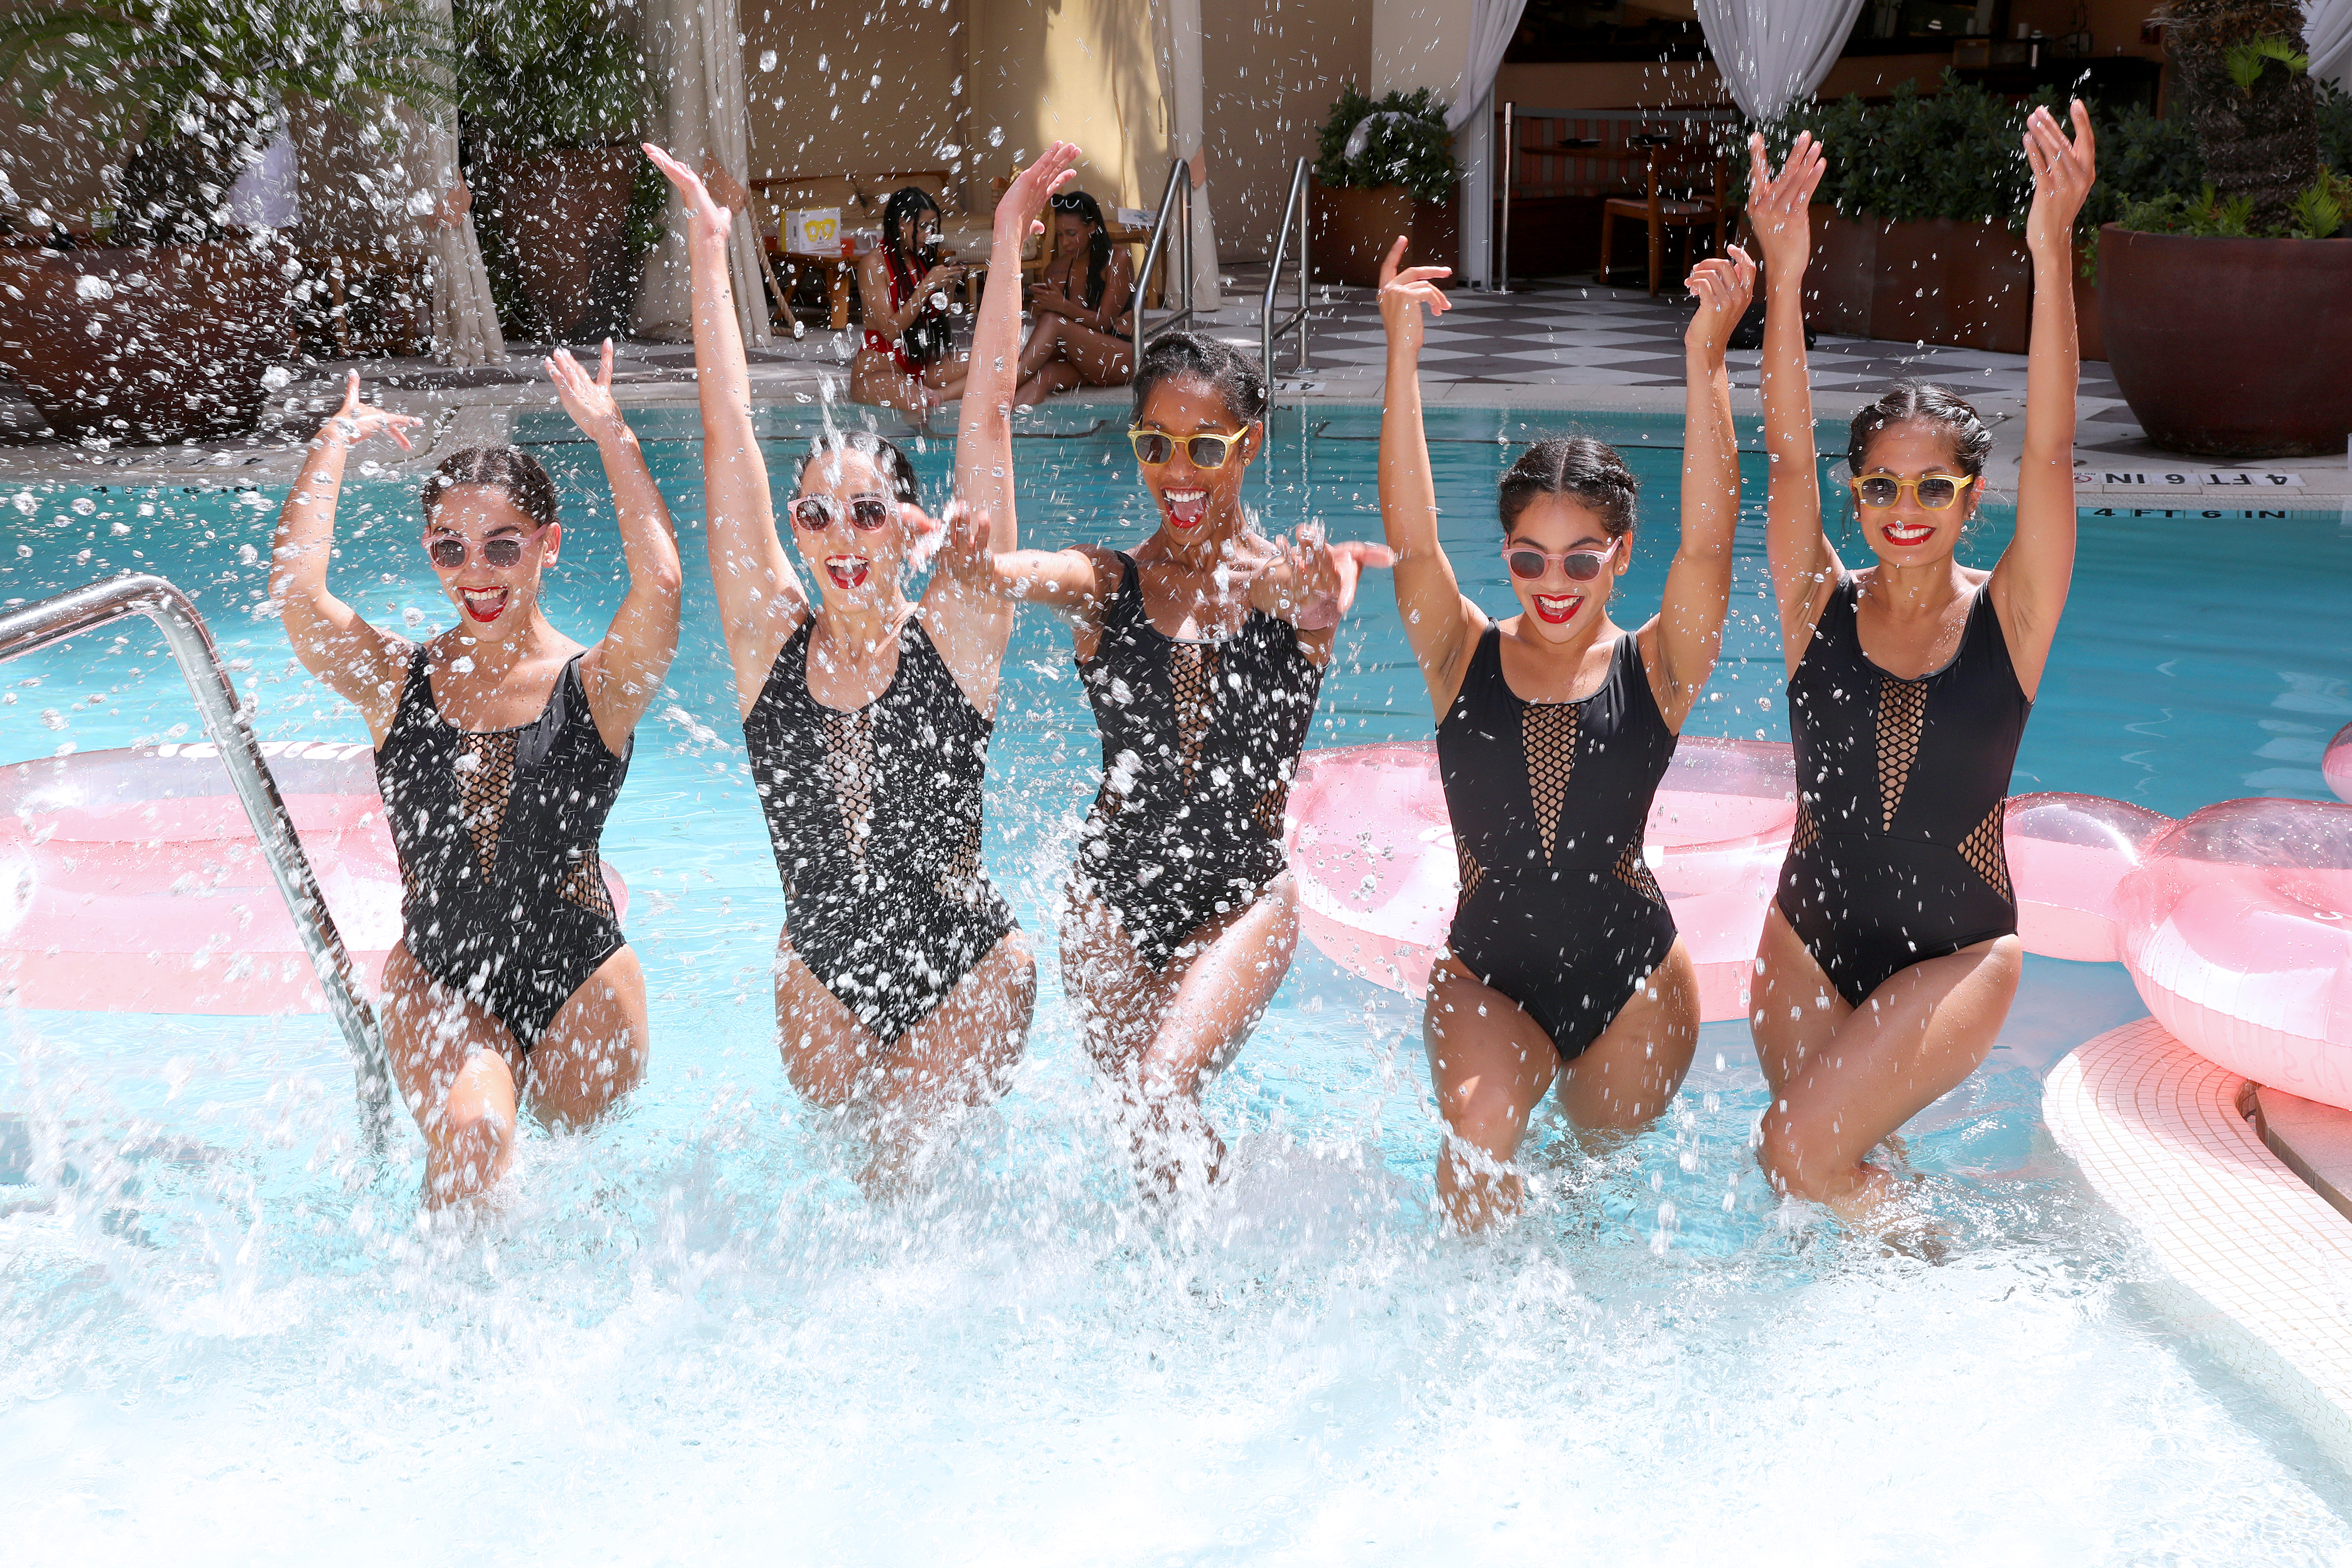 MIAMI BEACH, FLORIDA - JULY 13: Synchronized swimmers perform during the IIzipizi X Sunny Life Pool Party, Music By Odalys And Special Performance By Aqualillies - Paraiso Miami Beach at the Plymouth Hotel Miami on July 13, 2019 in Miami Beach, Florida. (Photo by Aaron Davidson/Getty Images for Paraiso Miami Beach)